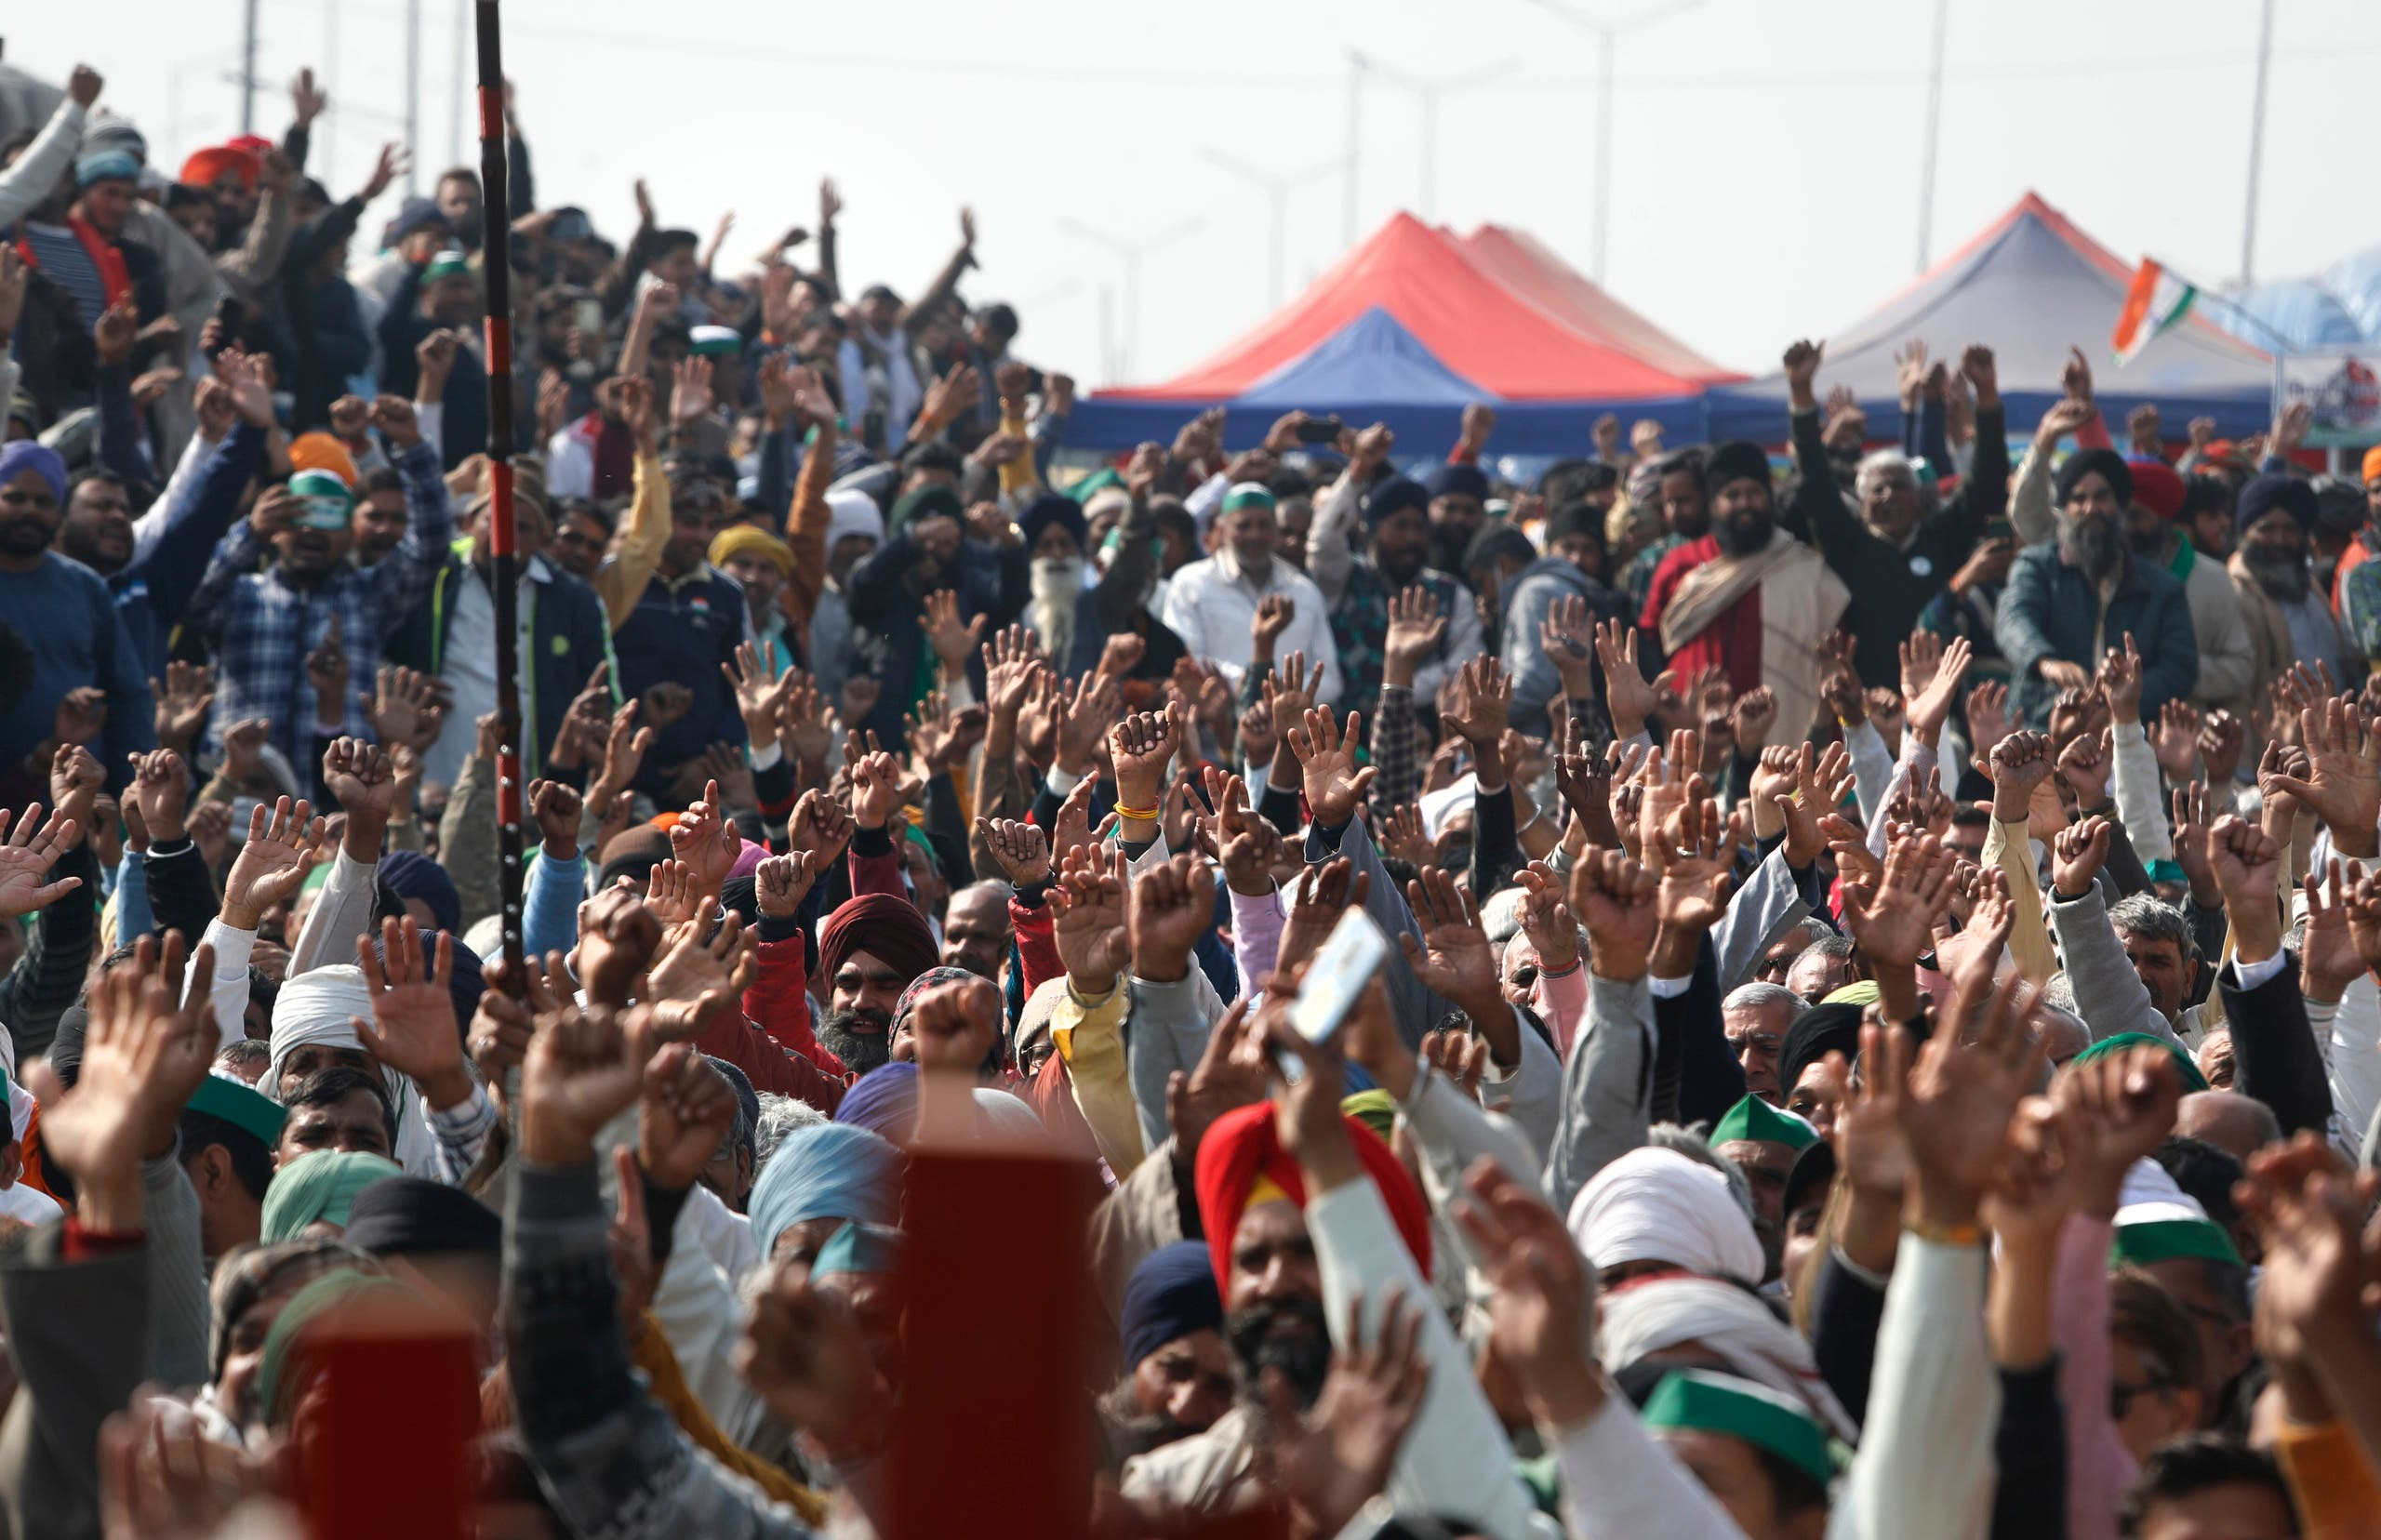 Farmers raise their hand as they shout slogans during a day-long hunger strike to protest against new farm laws, at the Delhi-Uttar Pradesh border, on the outskirts of New Delhi, India on Jan. 30, 2021. (AP)